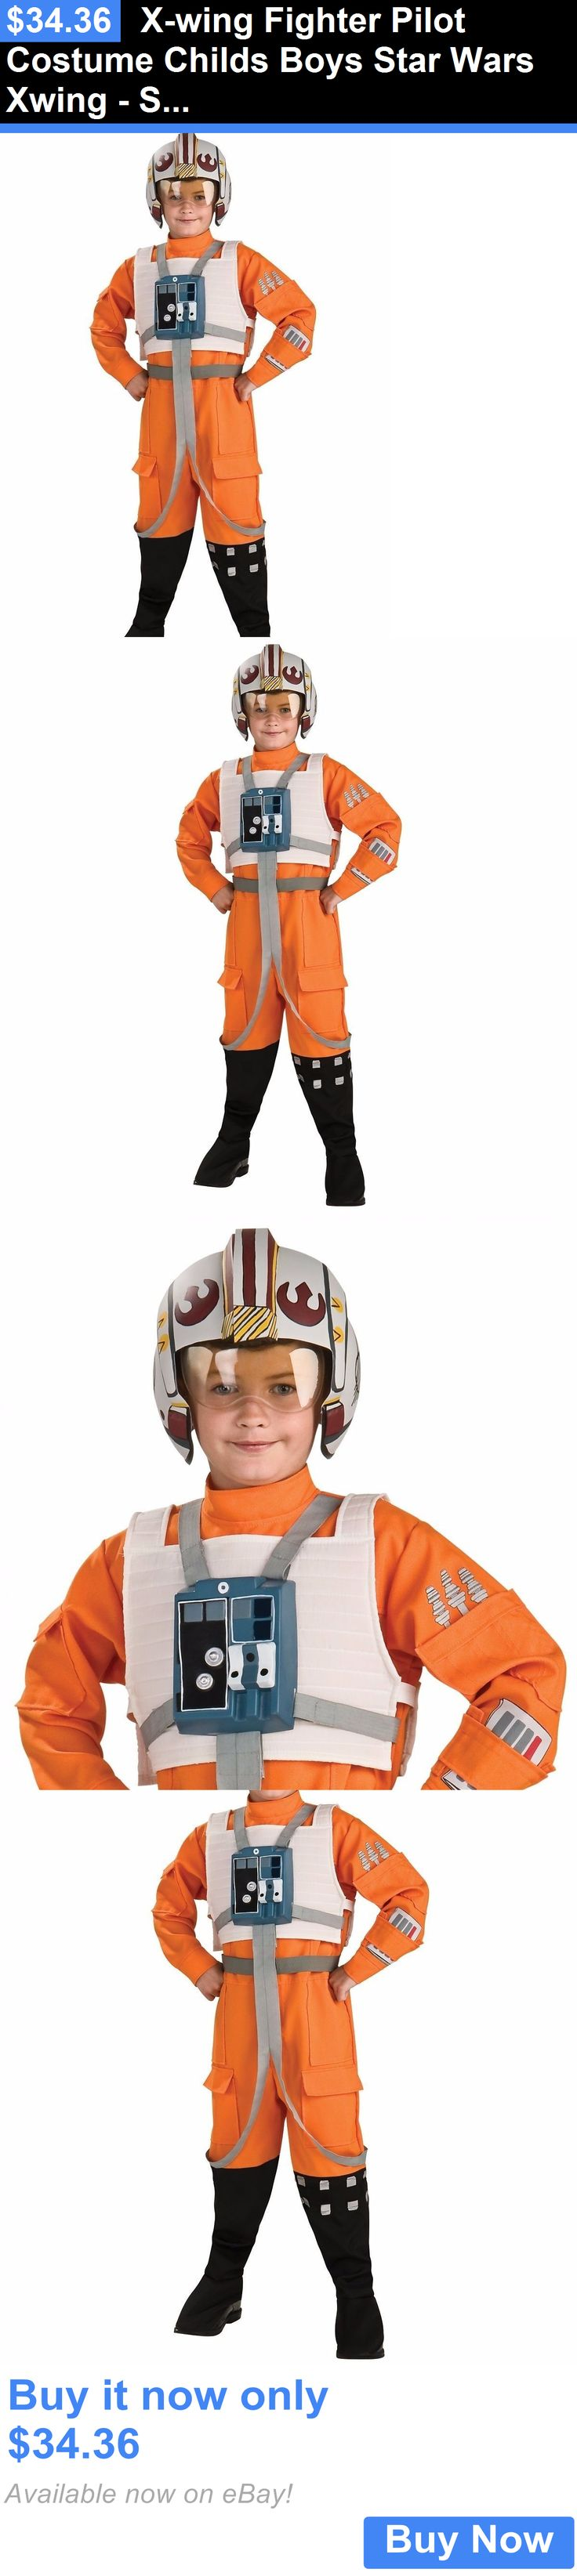 Halloween Costumes Kids: X-Wing Fighter Pilot Costume Childs Boys Star Wars Xwing - S 4-6 M 8-10 L 12-14 BUY IT NOW ONLY: $34.36